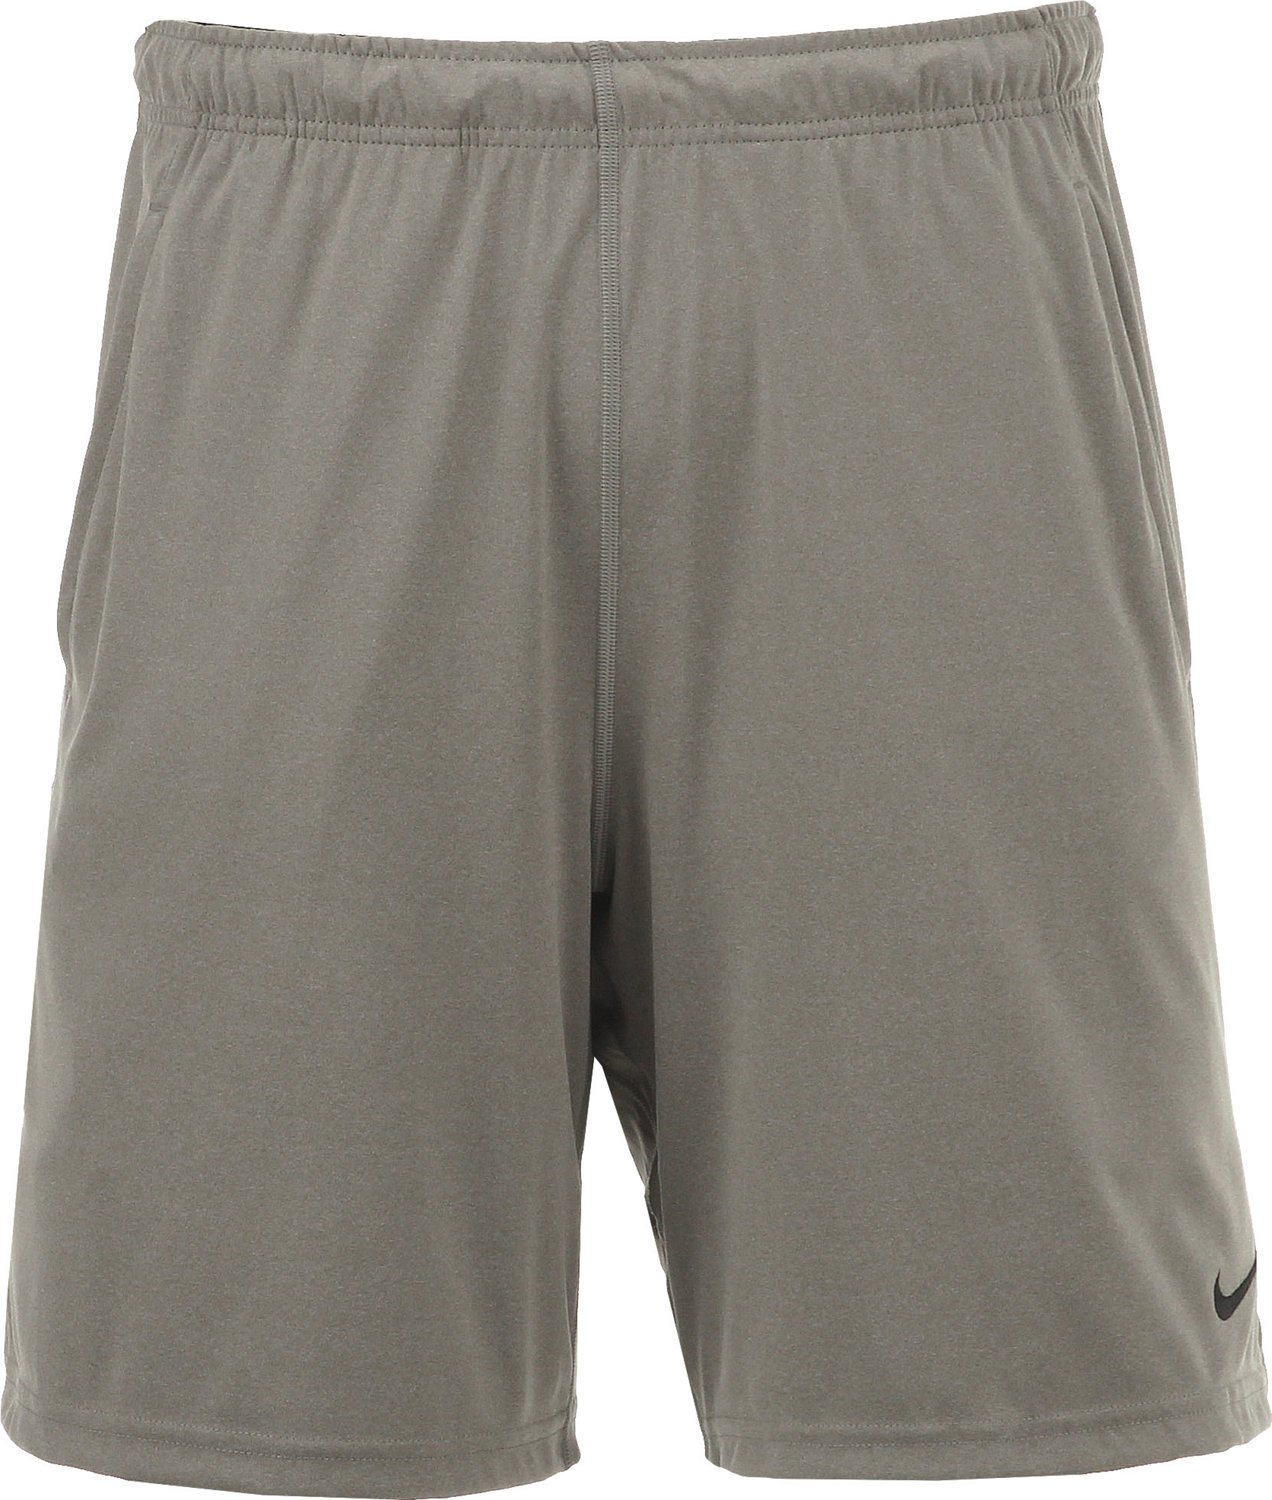 Display product reviews for Nike Men's Fly 9 in Short